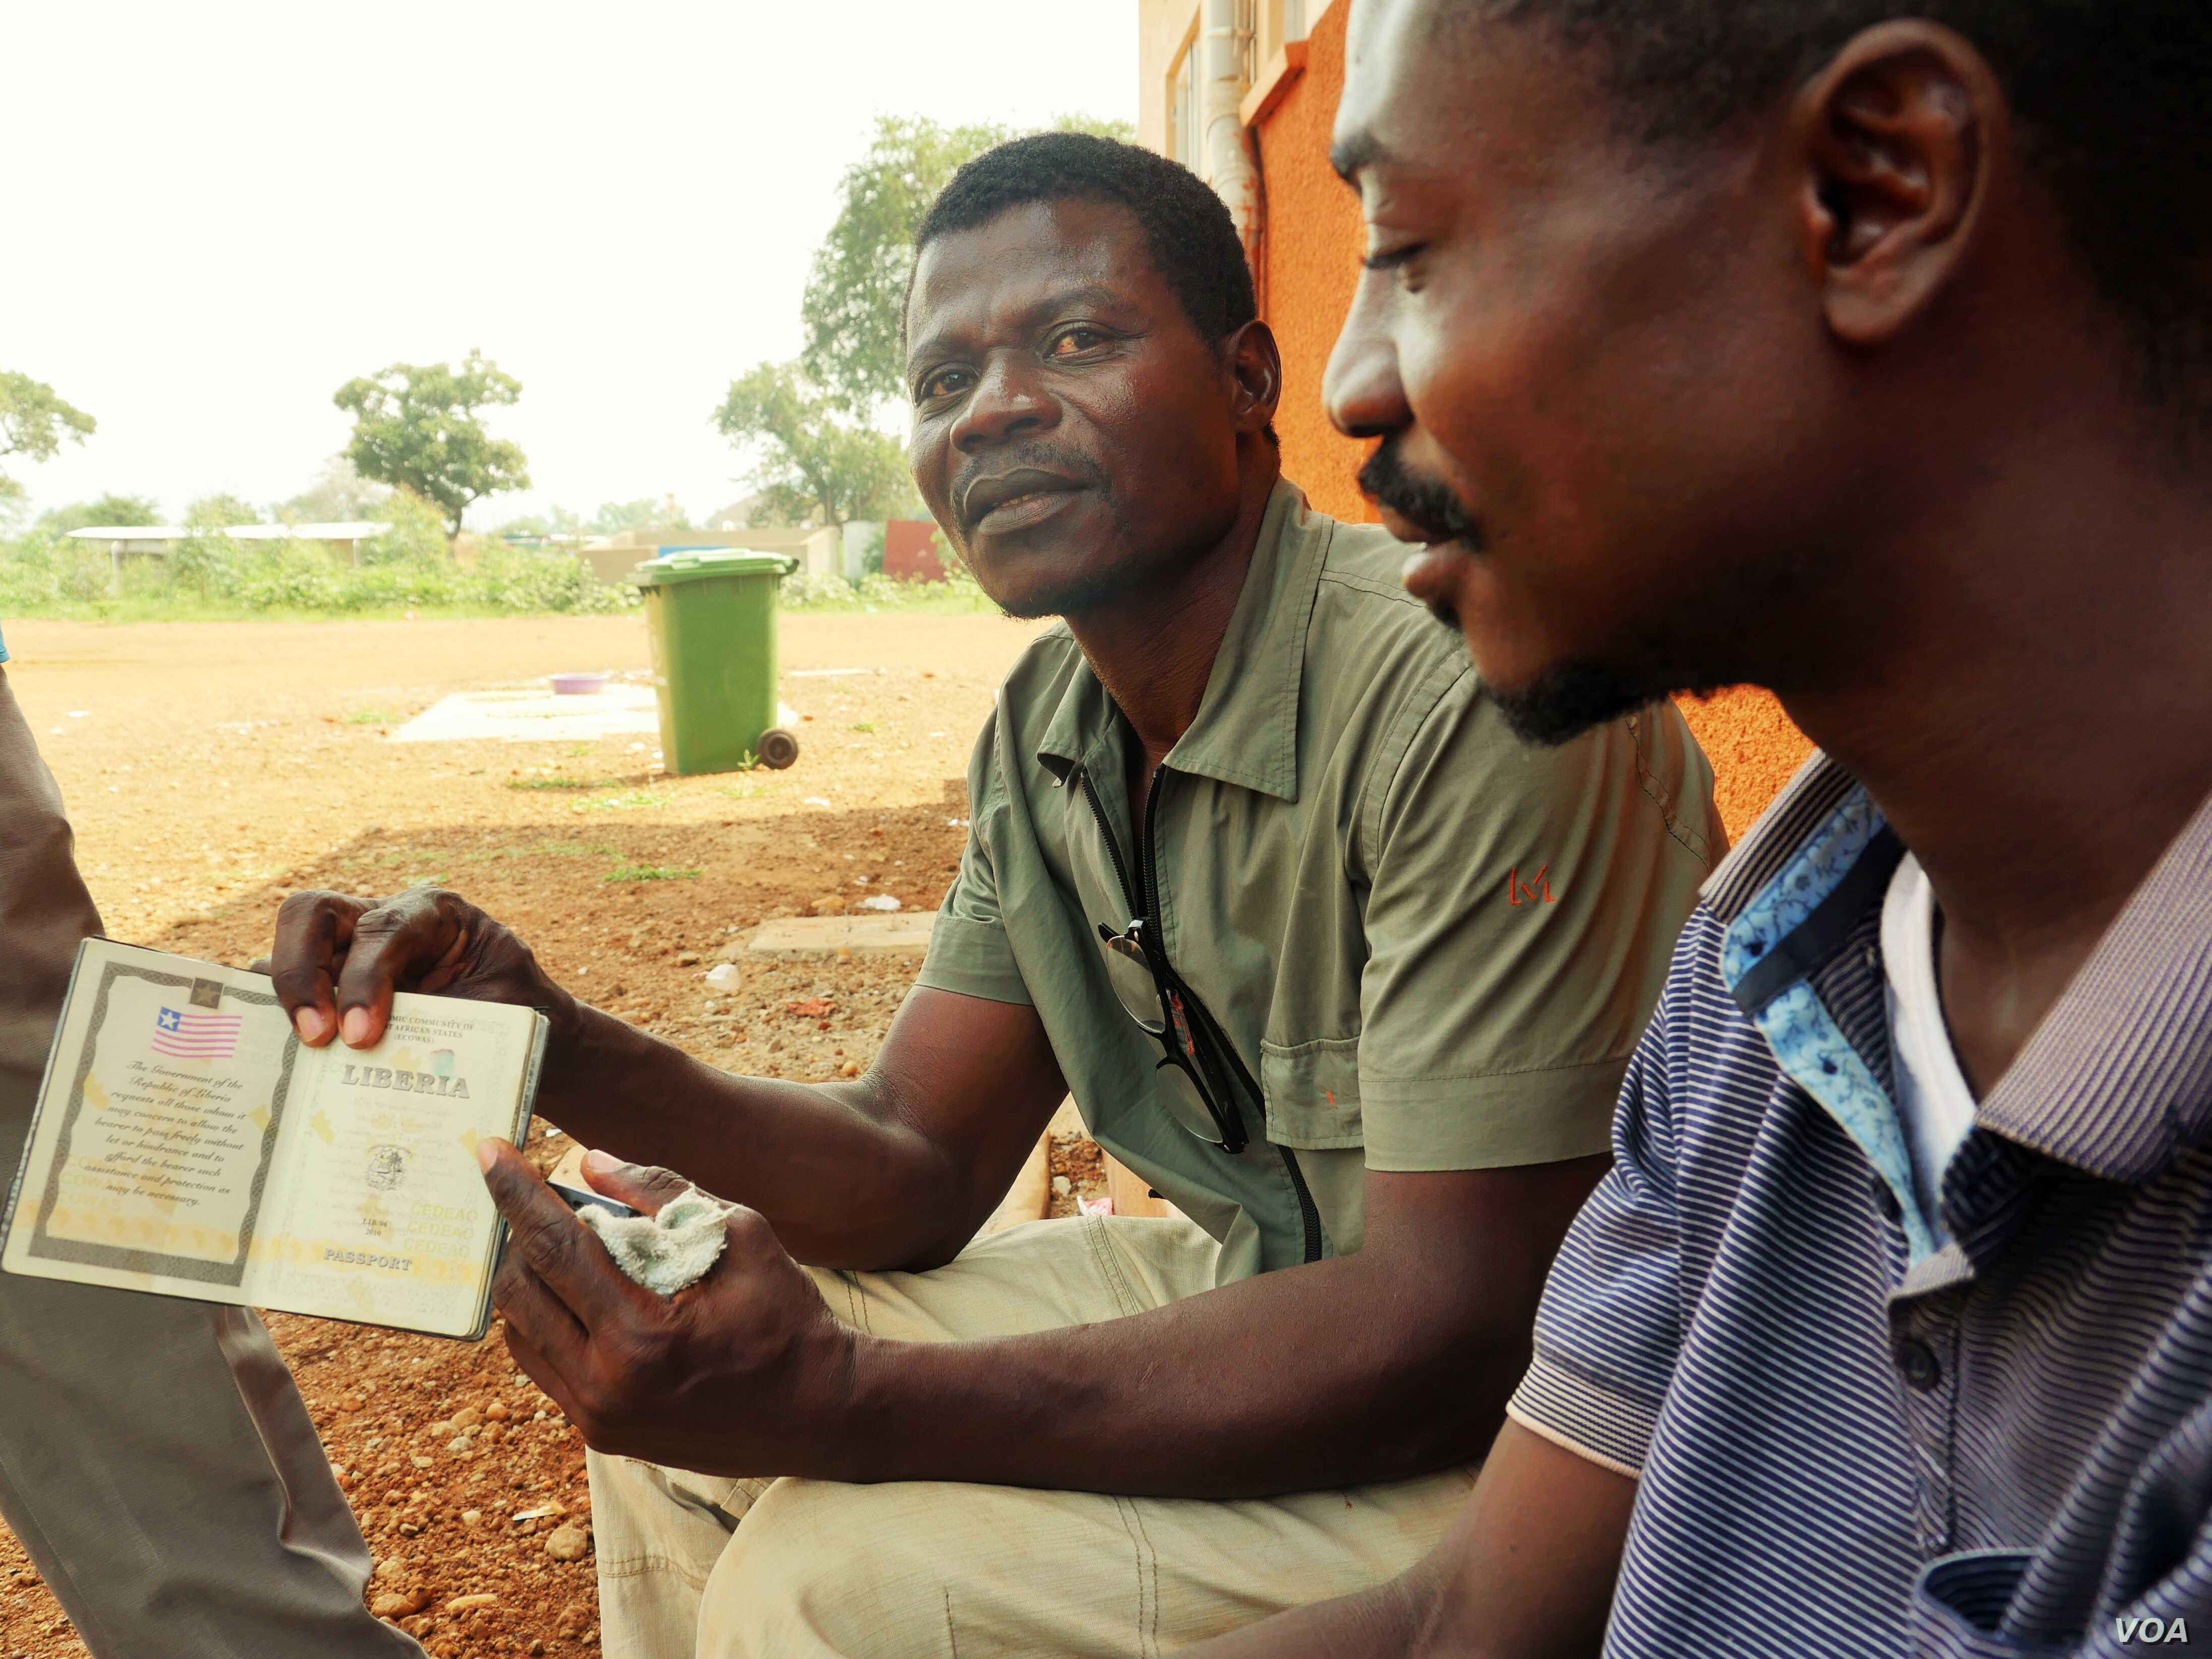 Edwin Taylor and his brother Samson Carl Lewis are two Liberians who were working in South Sudan. They say on their journey south to Uganda they saw bodies and burnt out cars. (L. Paulat/VOA)